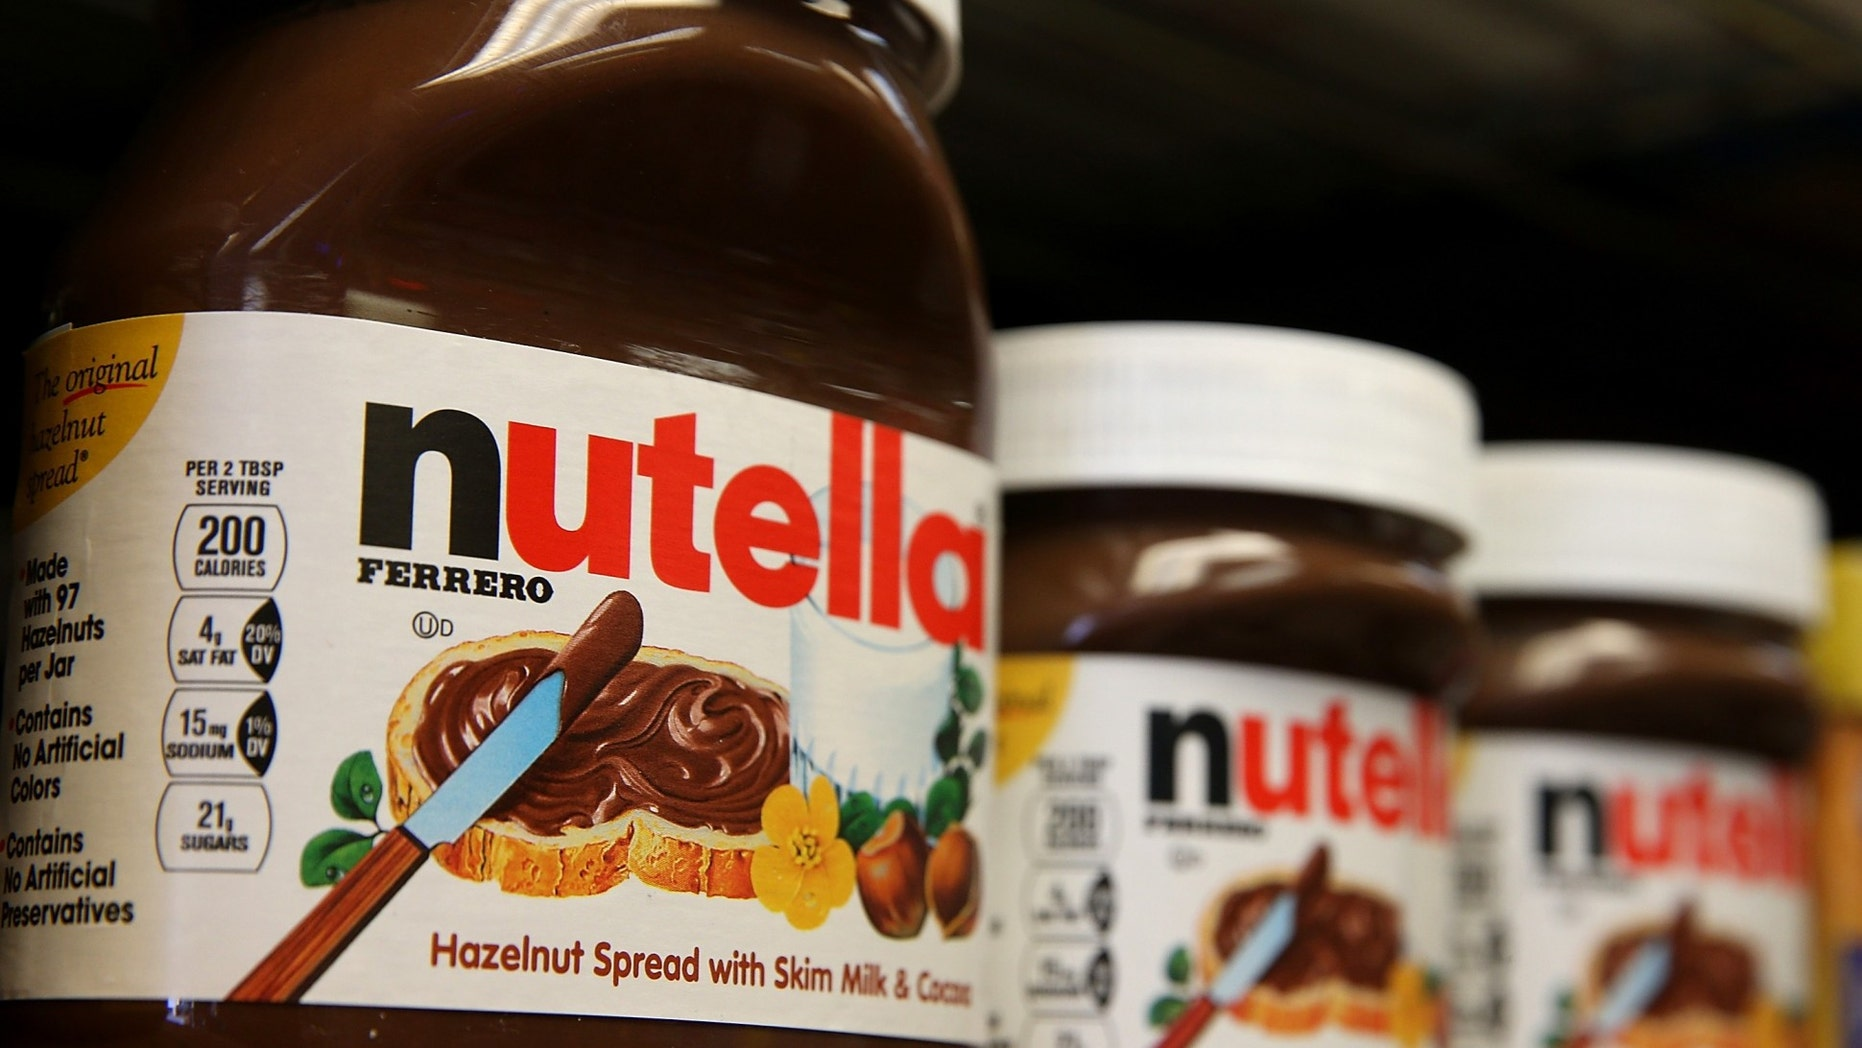 Ferrero says the continent's love for the chocolatey hazelnut spread has triggered a shortage.